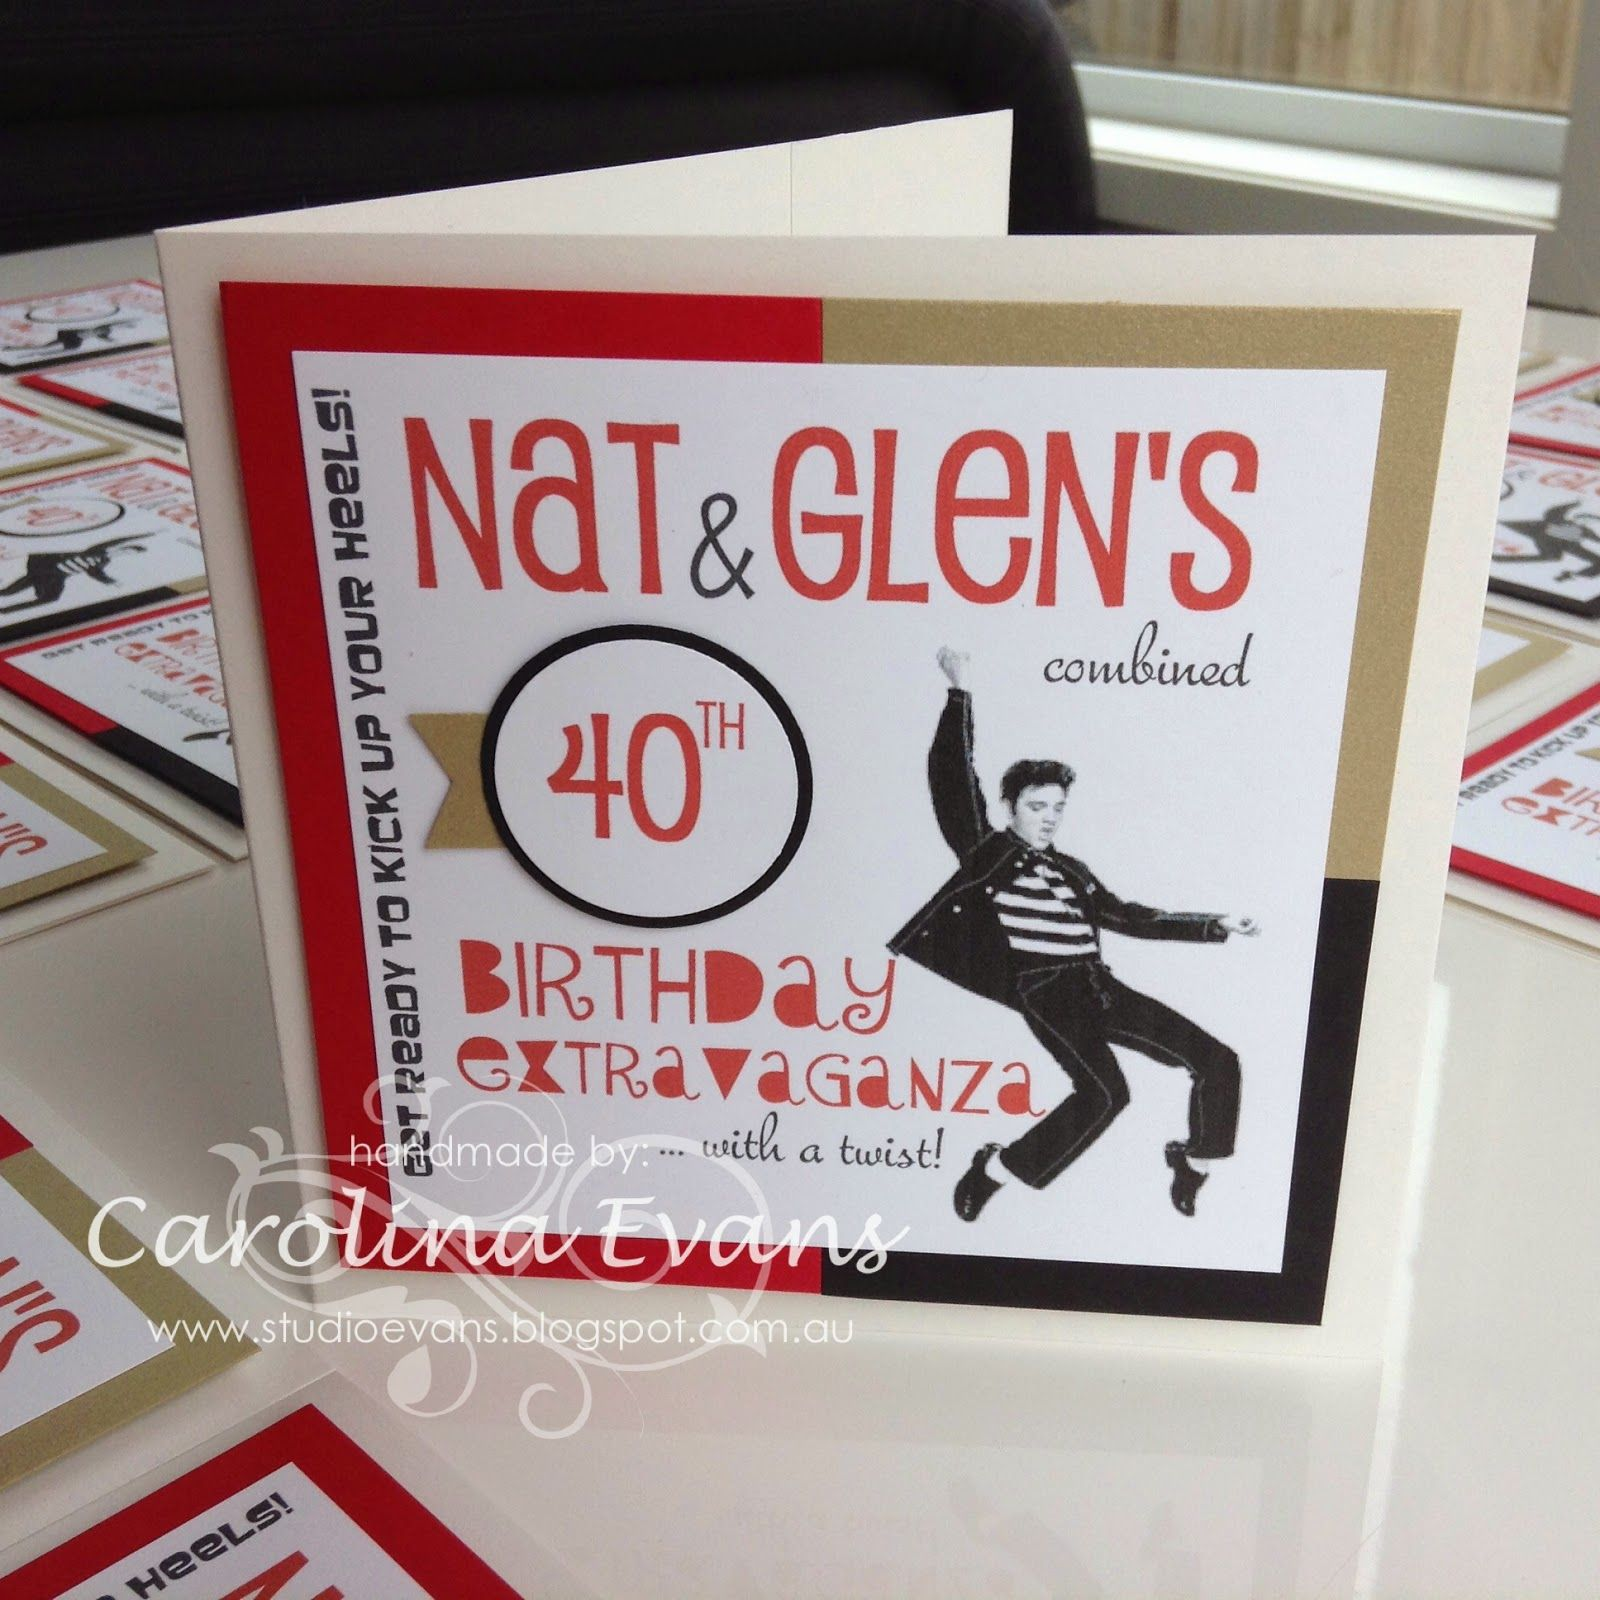 Elvis 40th Birthday Party Invitations – Party Invitations Melbourne